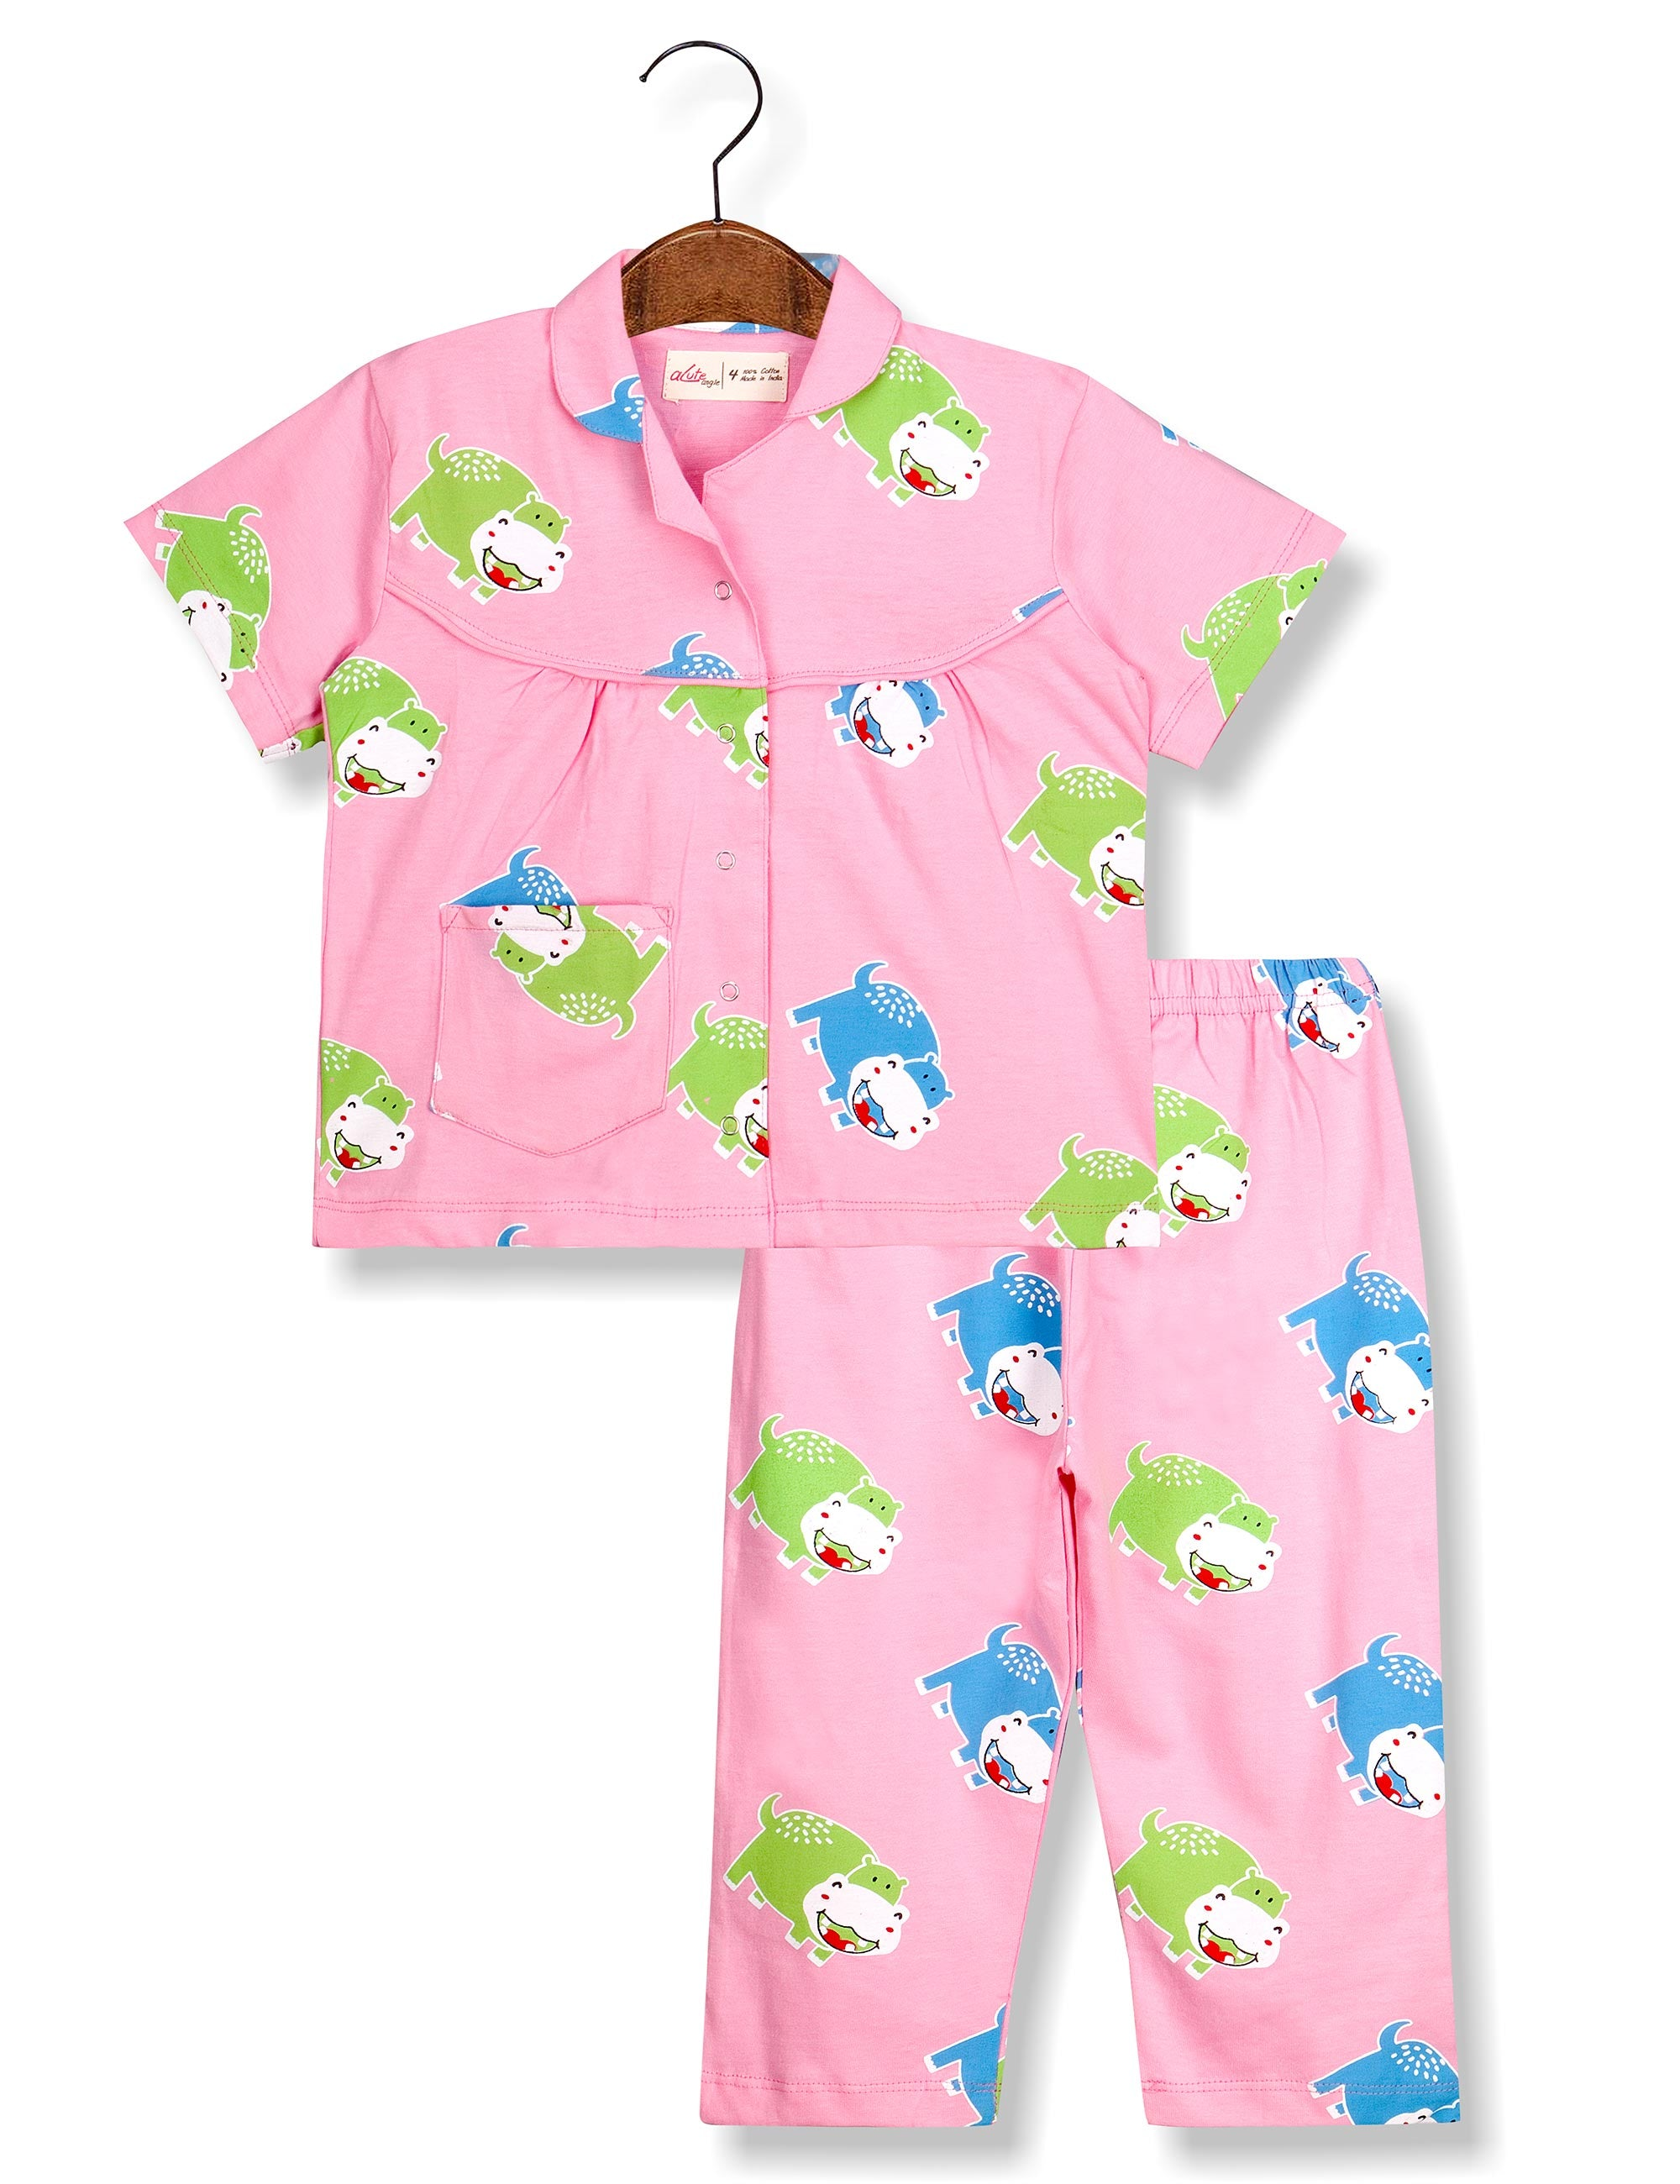 7b8bfbc826e Buy Acute Angle Hippo Night Suit for Girls at best Price - Mini Firgun